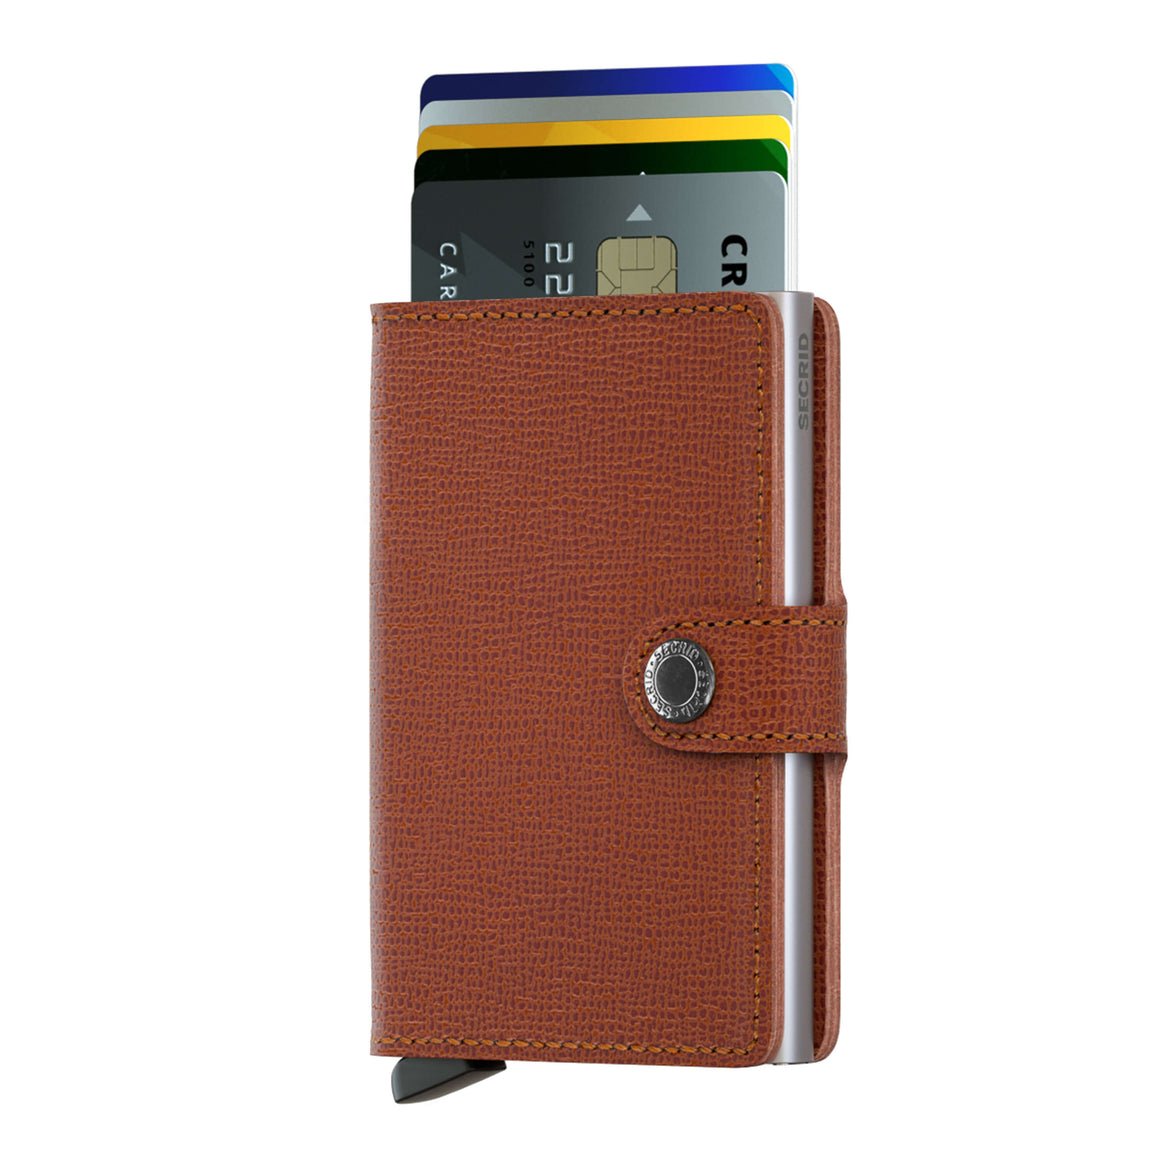 Crisple Miniwallet for Men in Camel